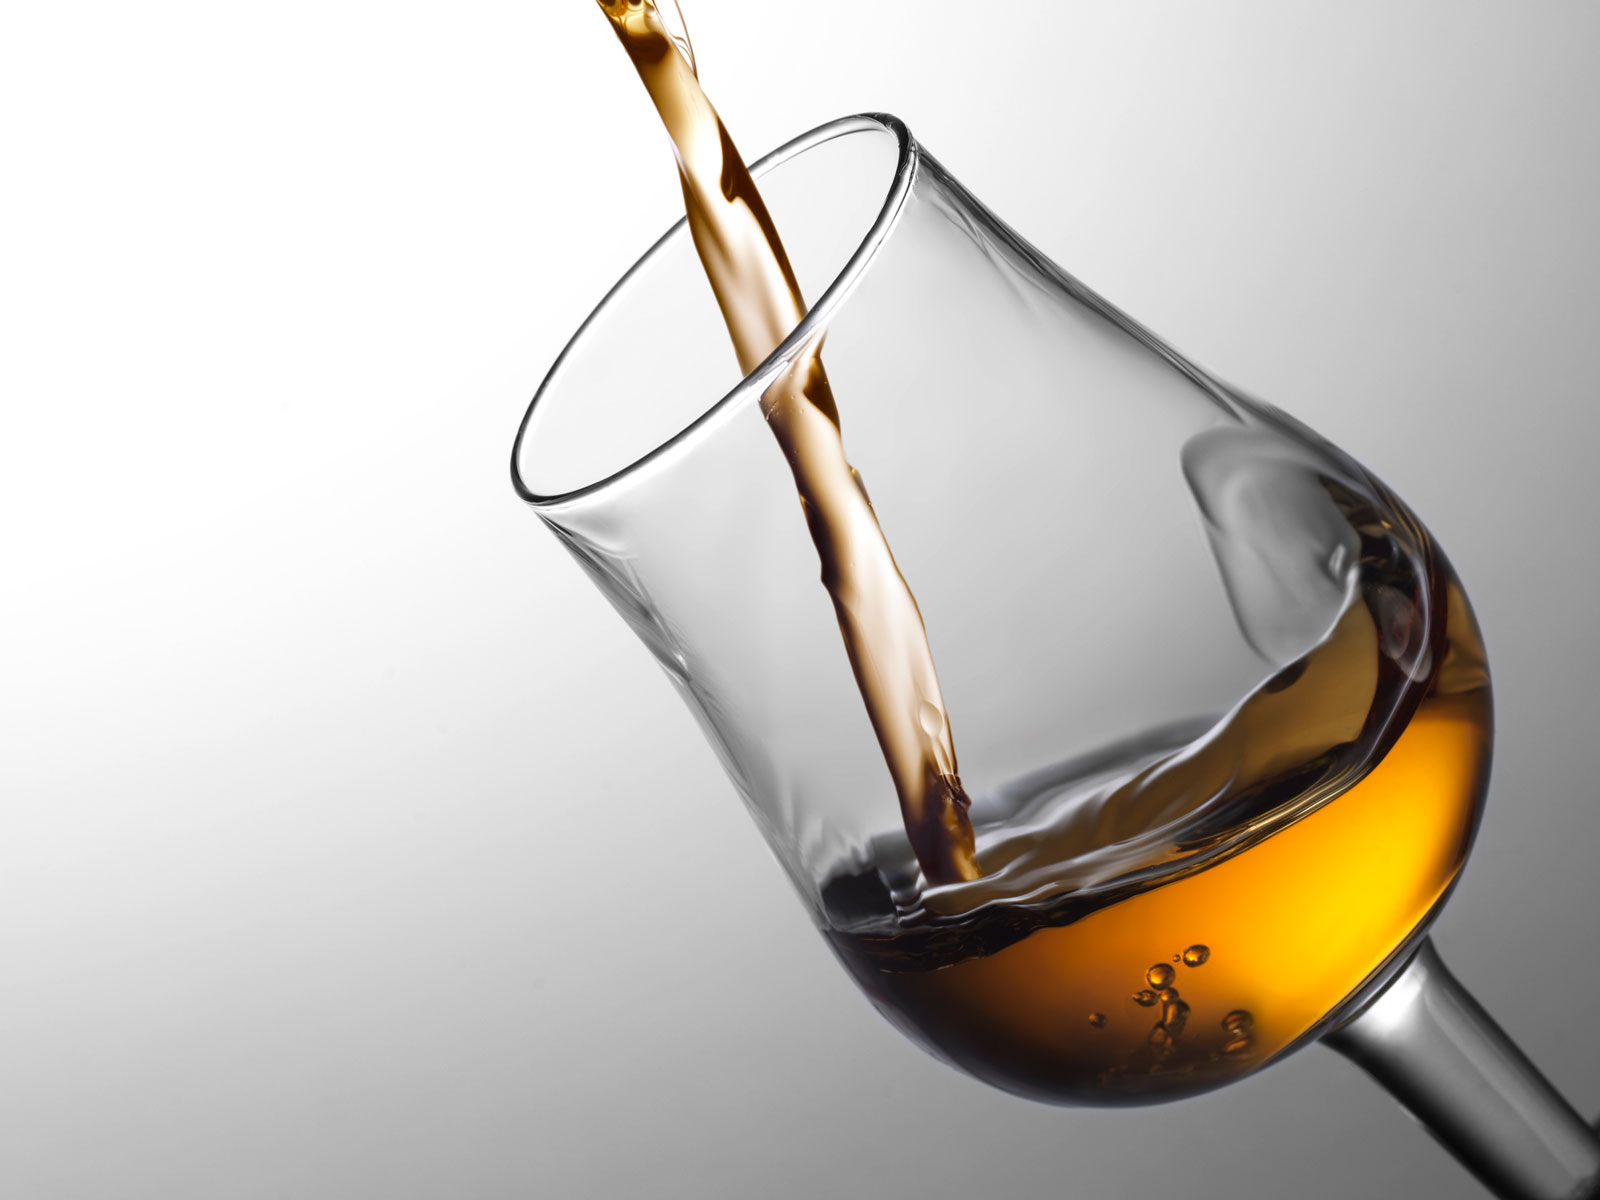 In the Future, Artificial Intelligence May Create All of Our Alcoholic Beverages